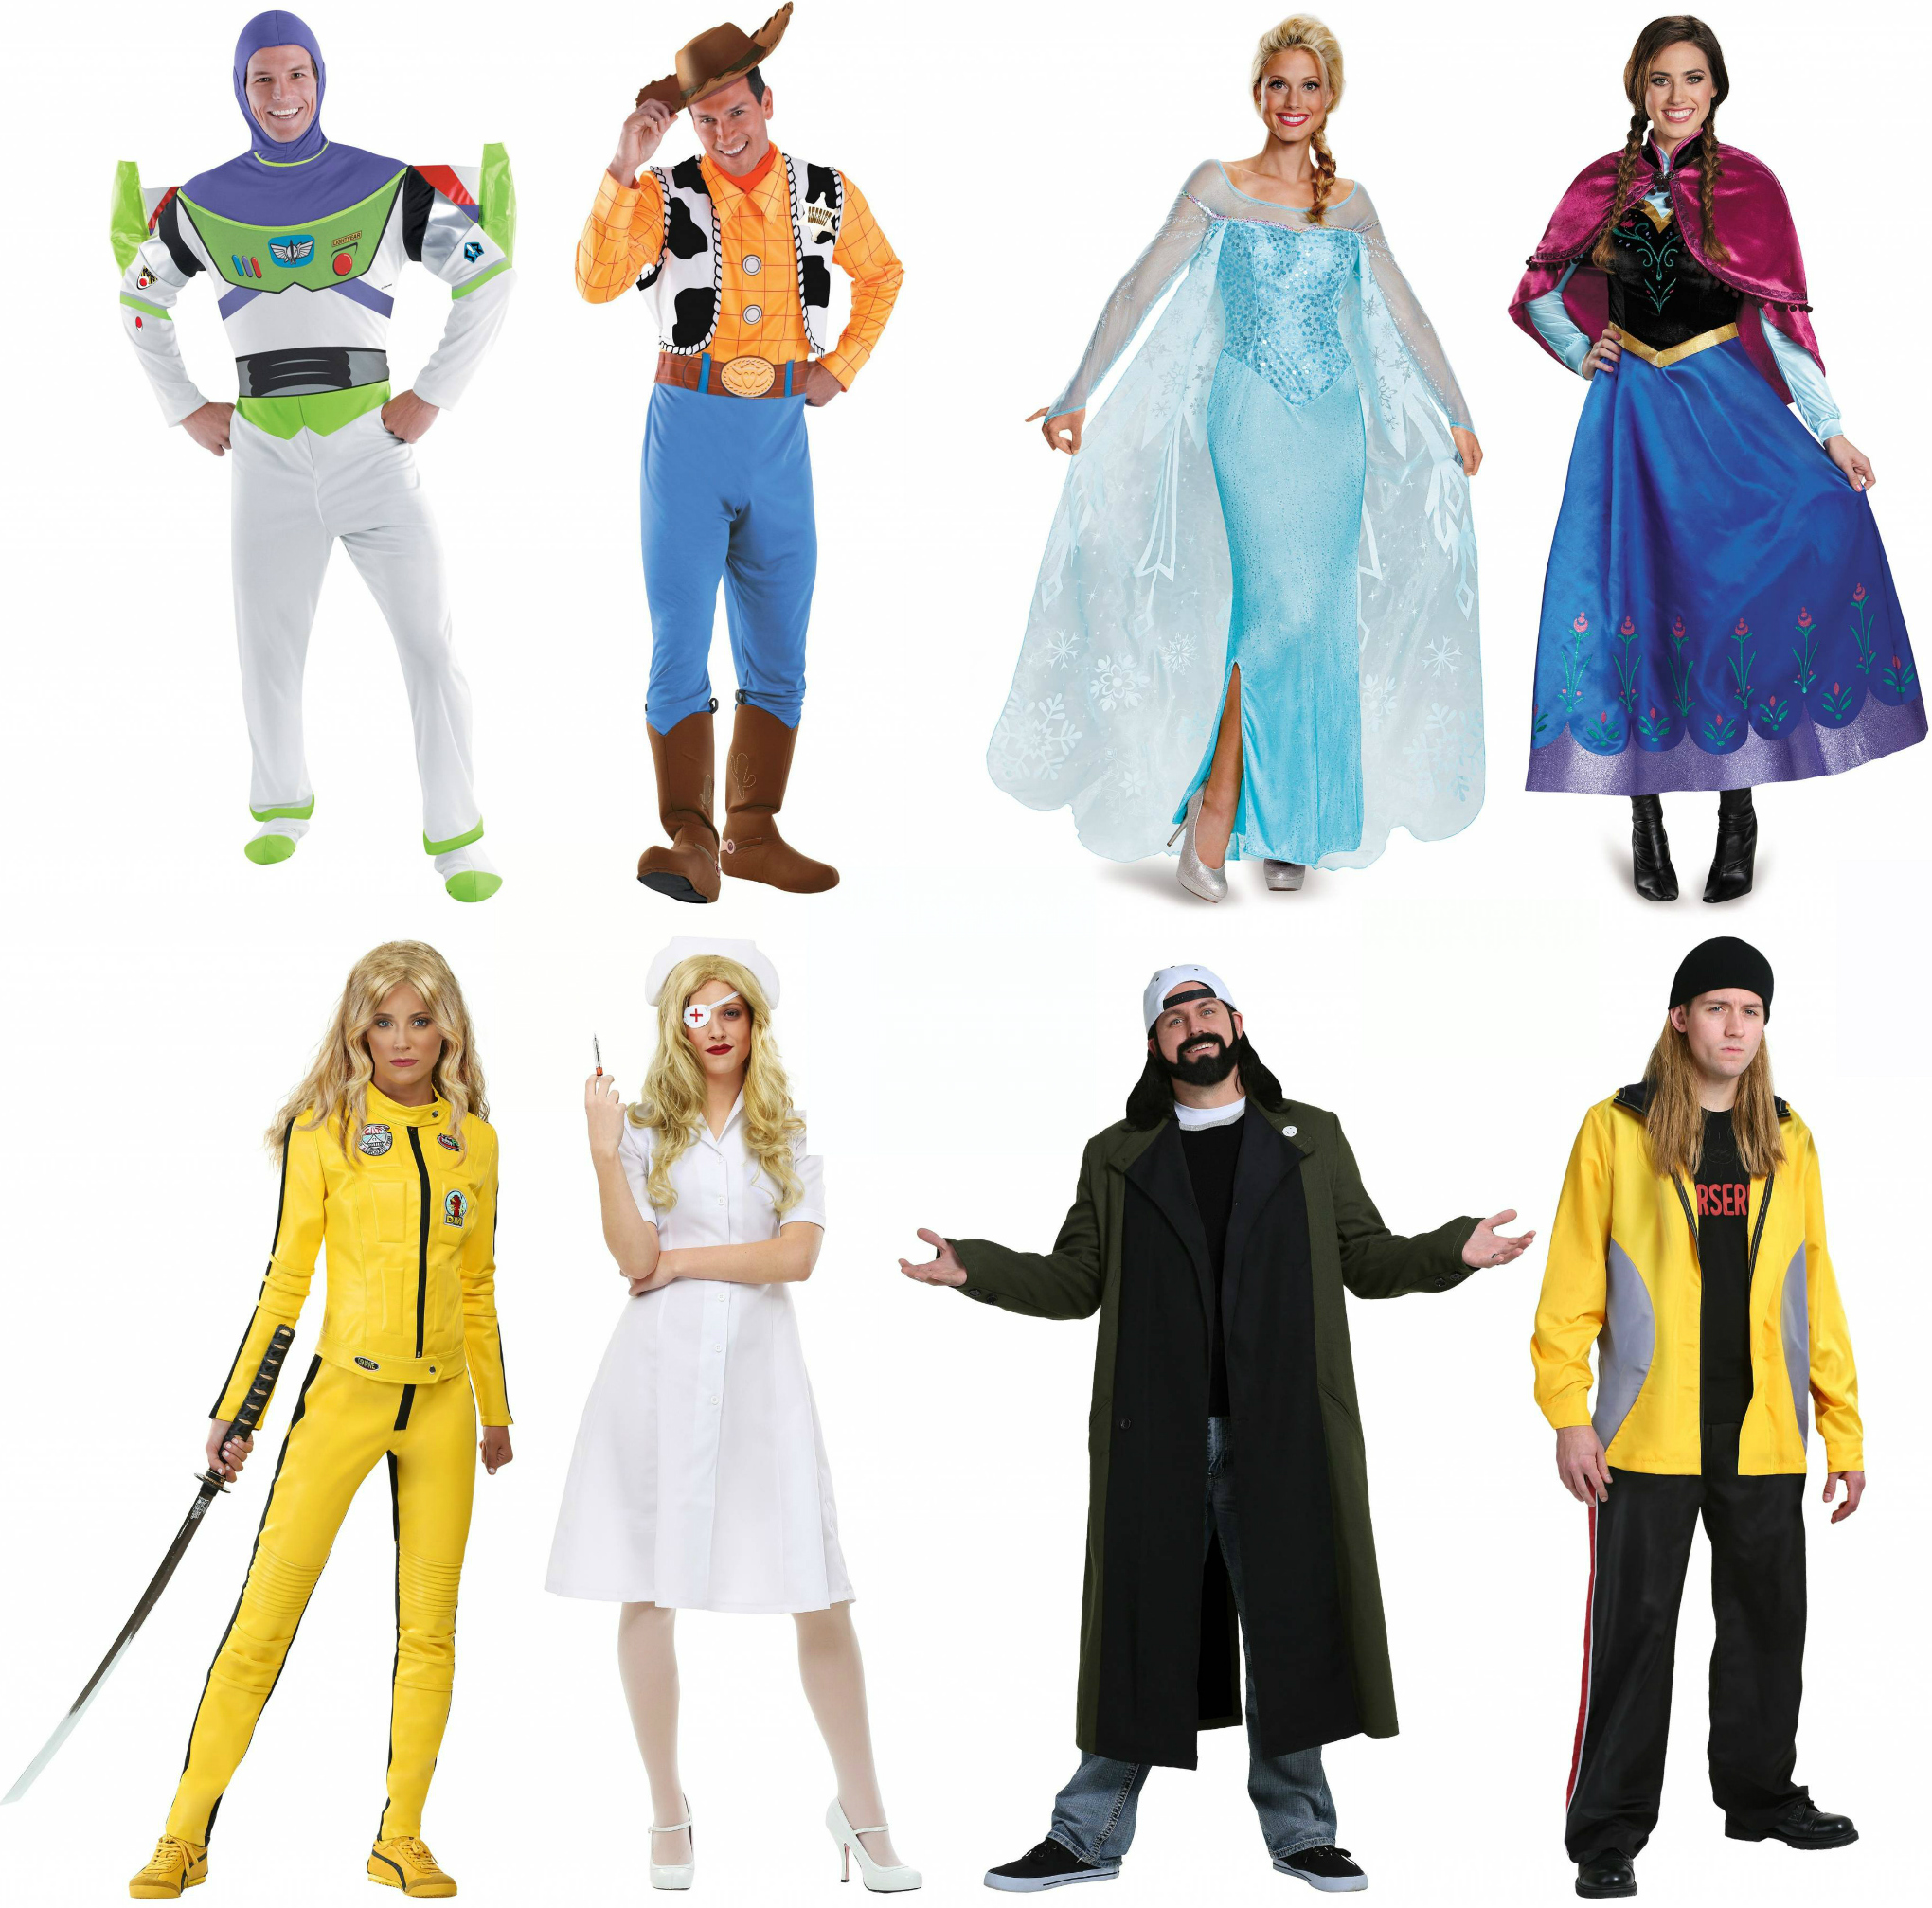 halloween costume guide for bffs - halloween costumes blog